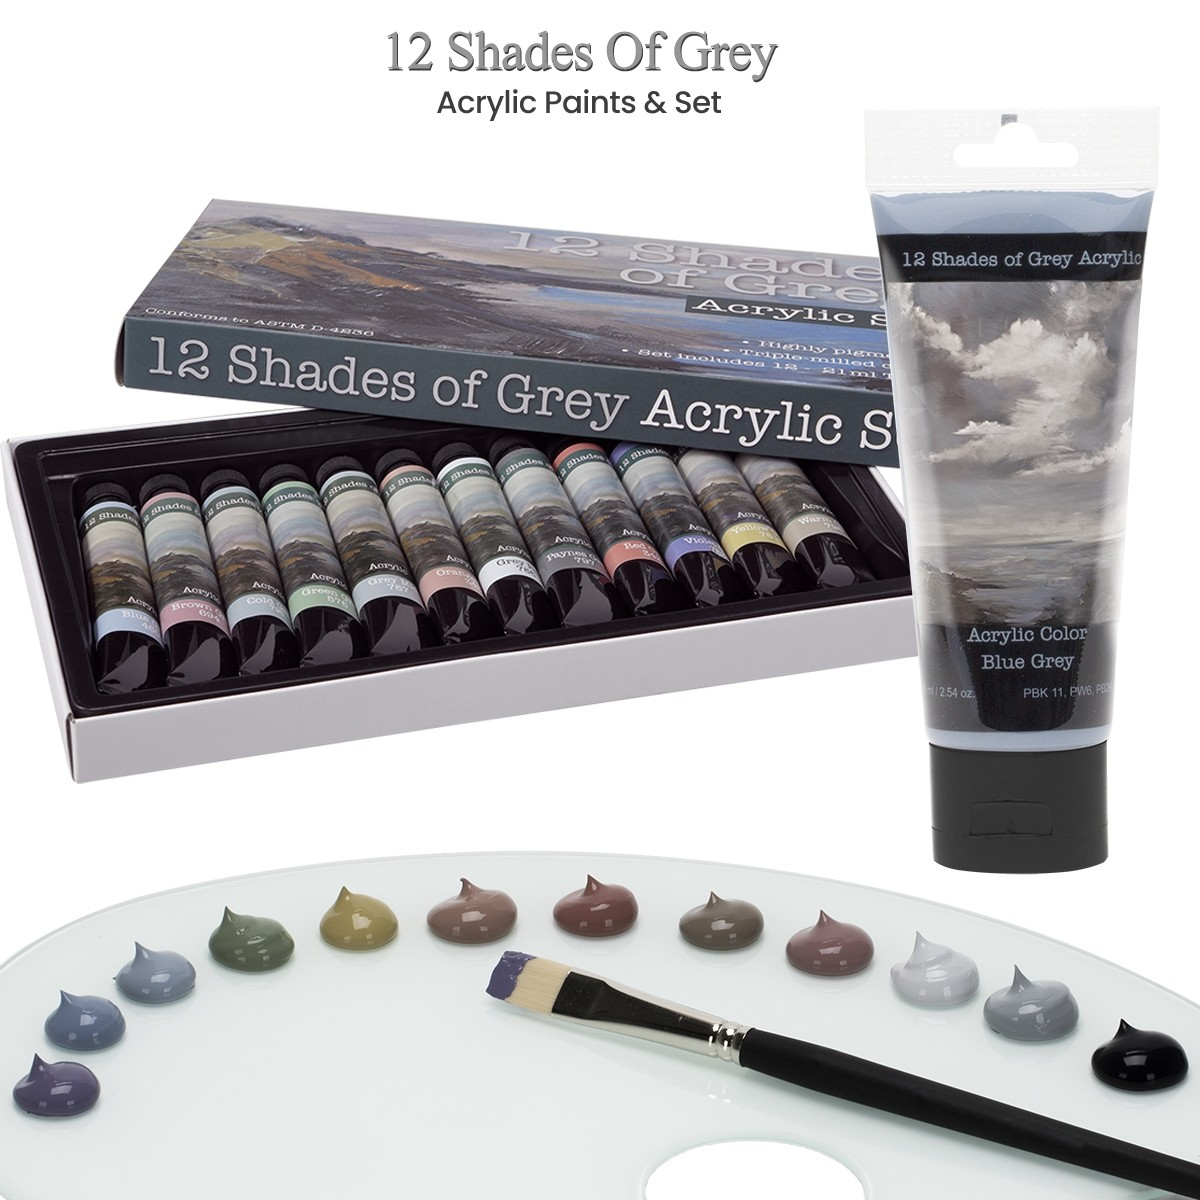 12 Shades of Grey Acrylic Paint Colors & Set of 12